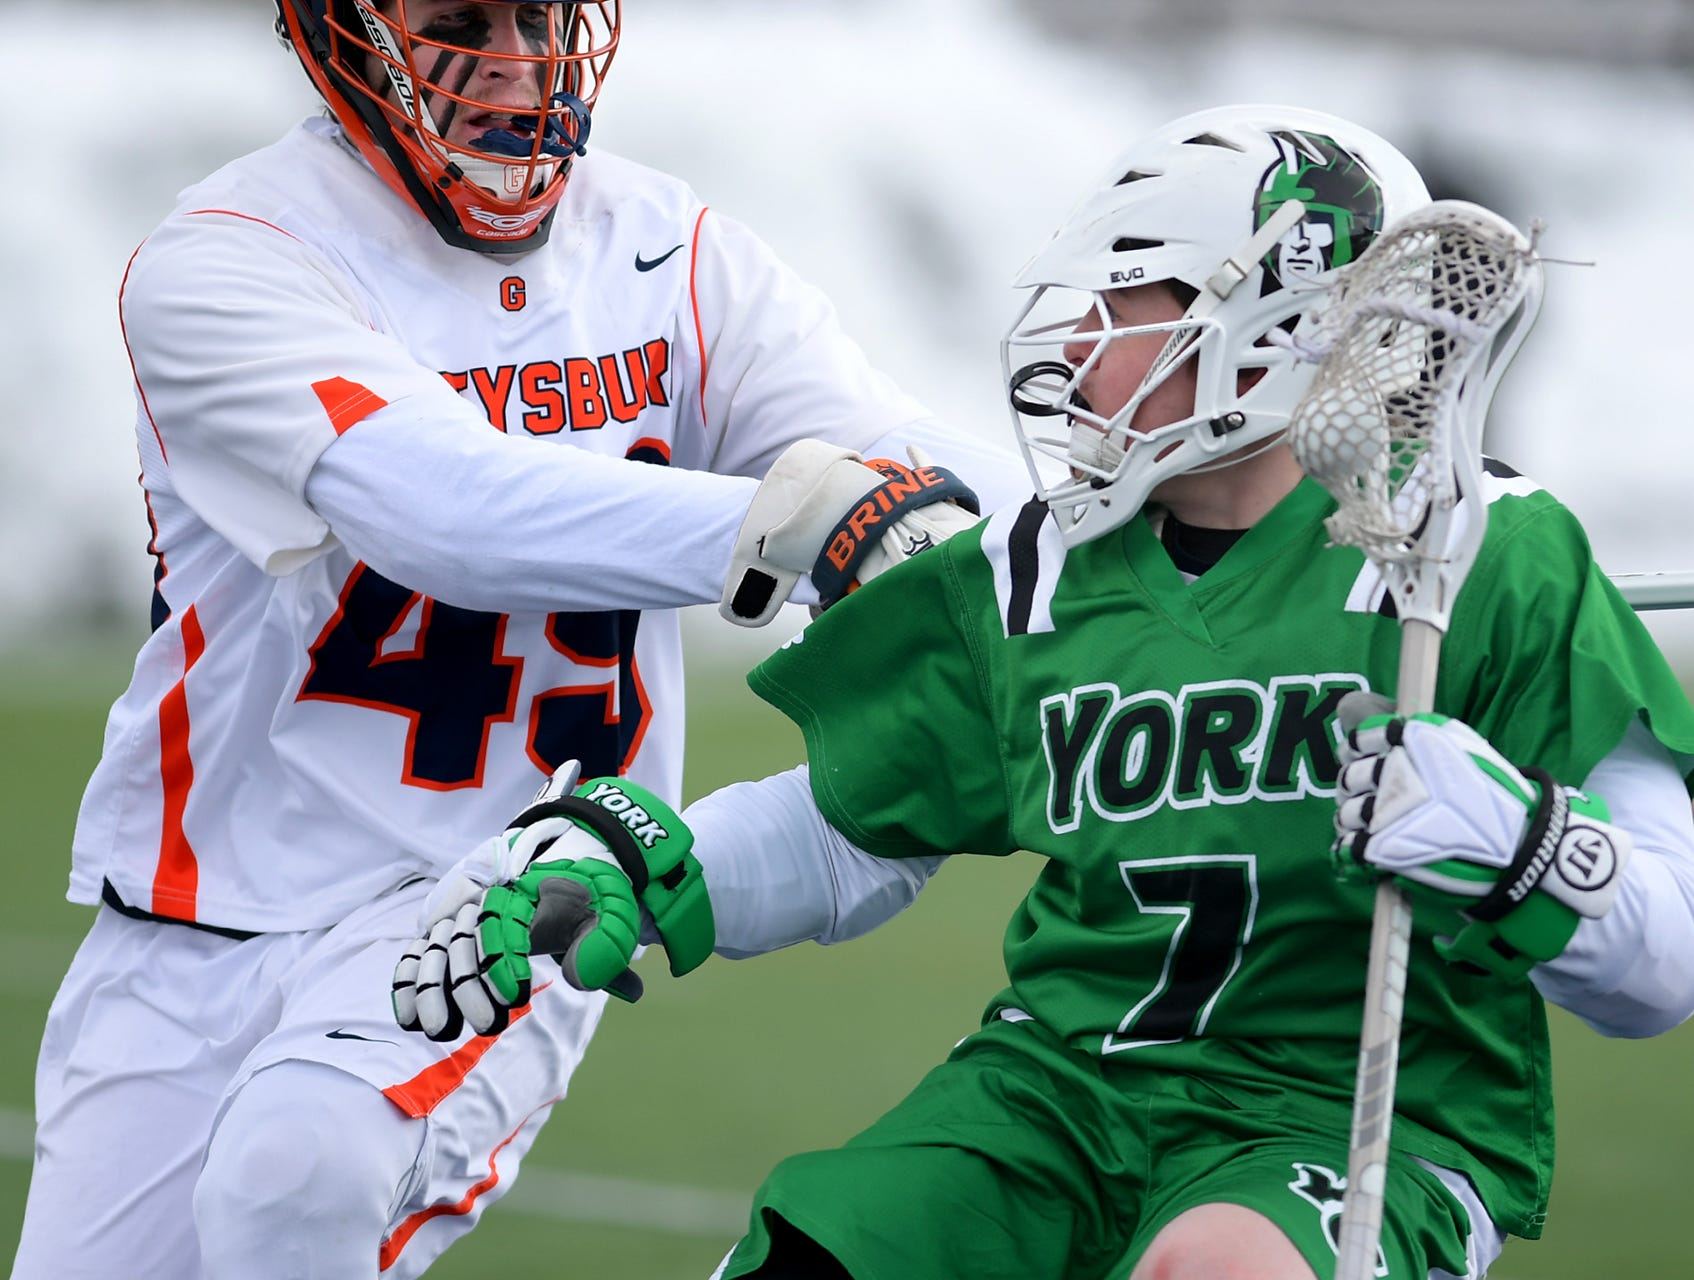 York College's Jake Hvazda tries to shake Gettysburg College's Jackson Mumford during lacrosse action at Gettysburg Wednesday, March 6, 2019. Both teams were ranked in the top 10 nationally in NCAA Division III men's lacrosse coming into the game. York won 14-6. Bill Kalina photo